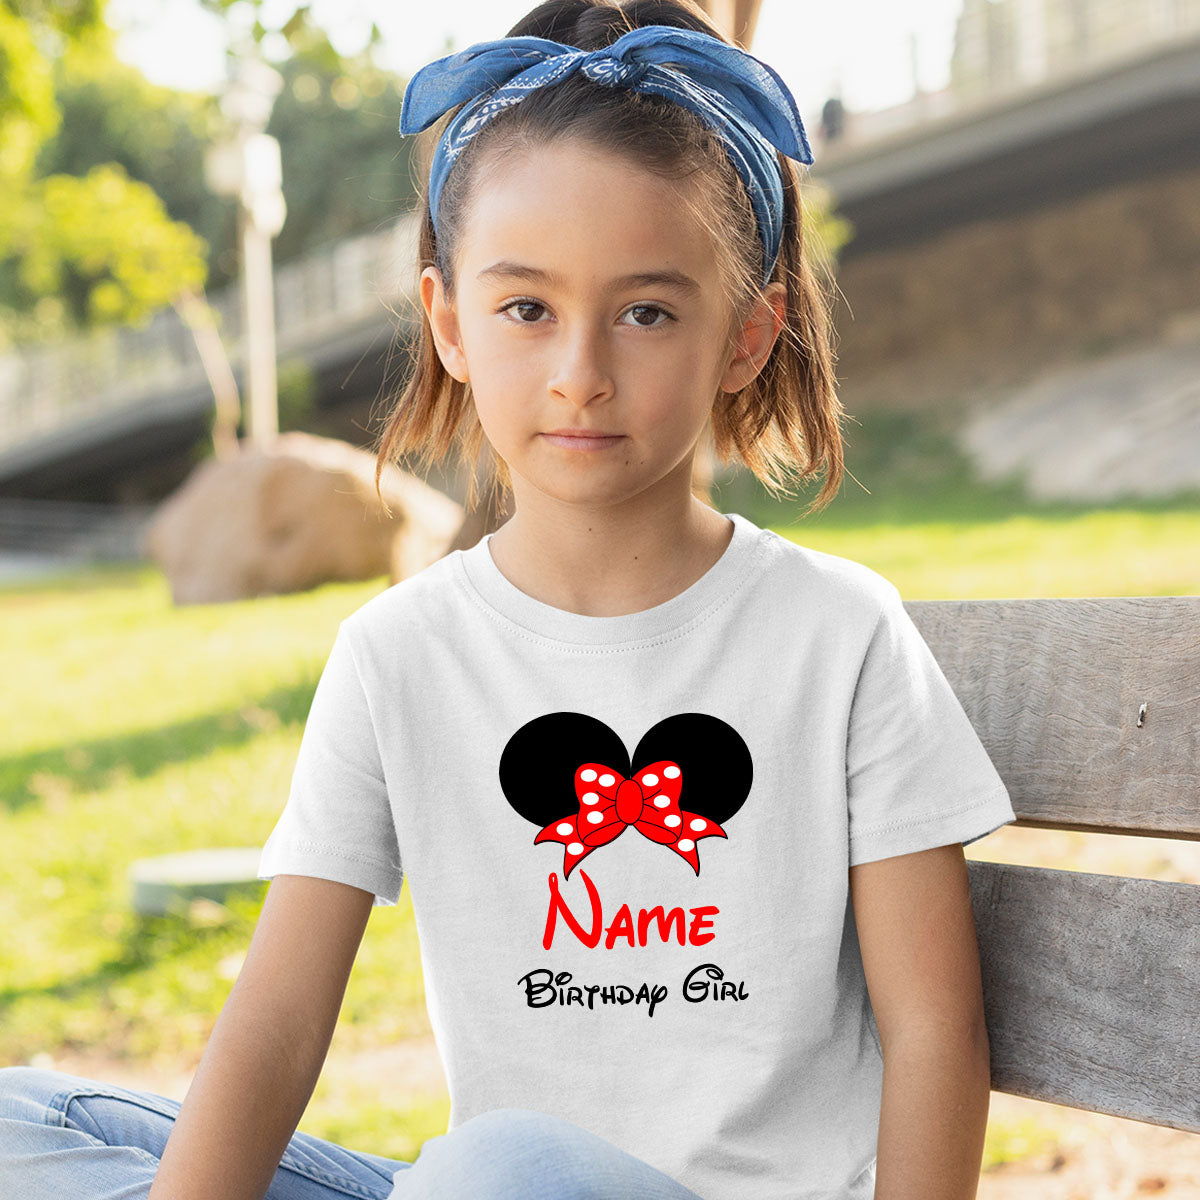 Sprinklecart Little Princess Design Printed Birthday Gift | Personalized Birthday Wear Tee for Your Loved One